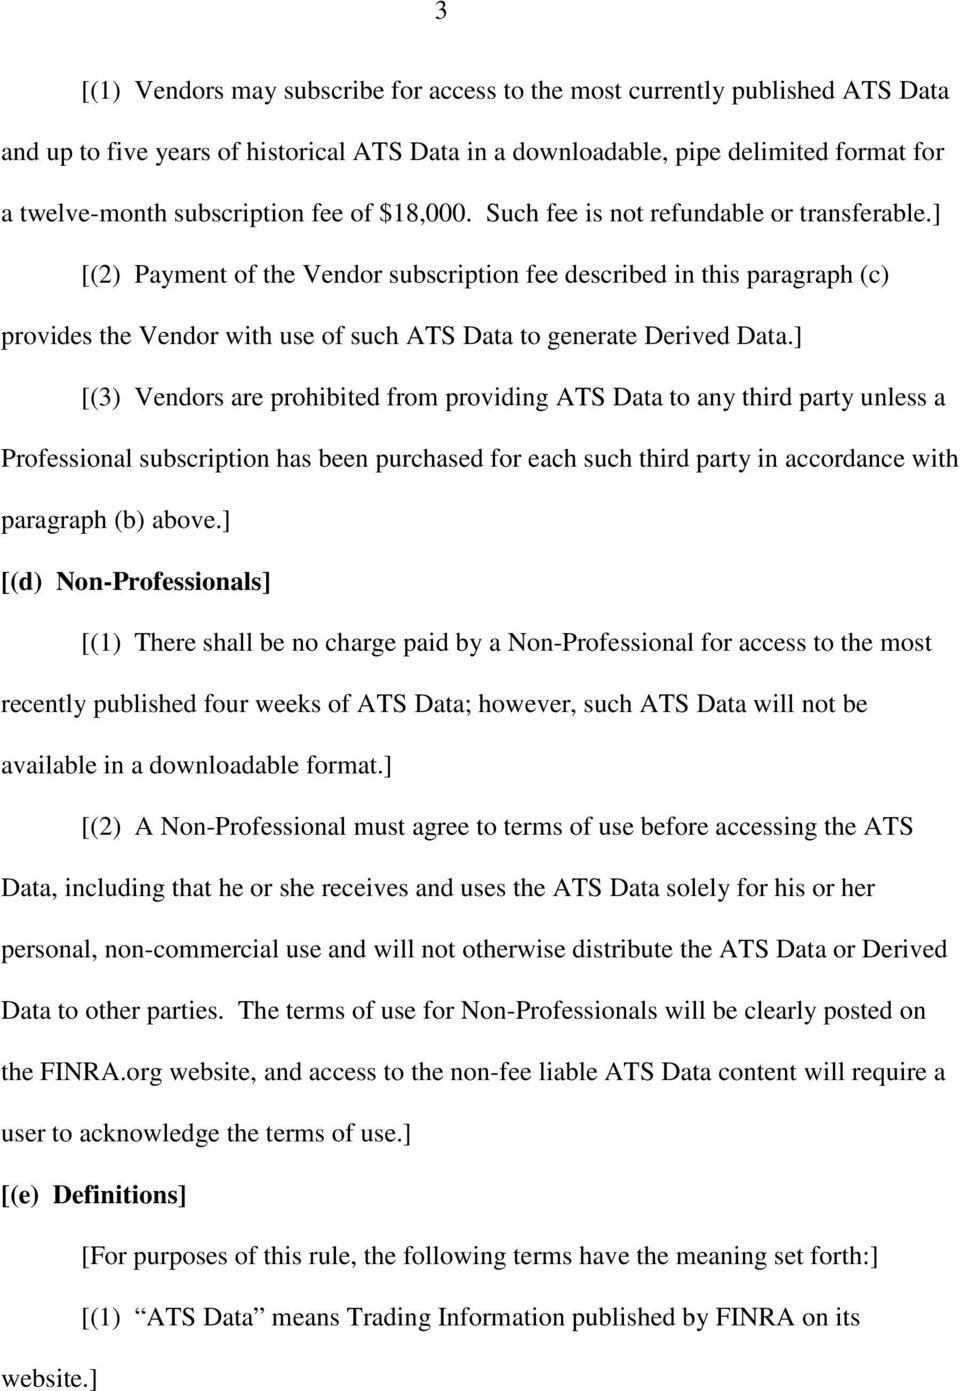 ] [(2) Payment of the Vendor subscription fee described in this paragraph (c) provides the Vendor with use of such ATS Data to generate Derived Data.